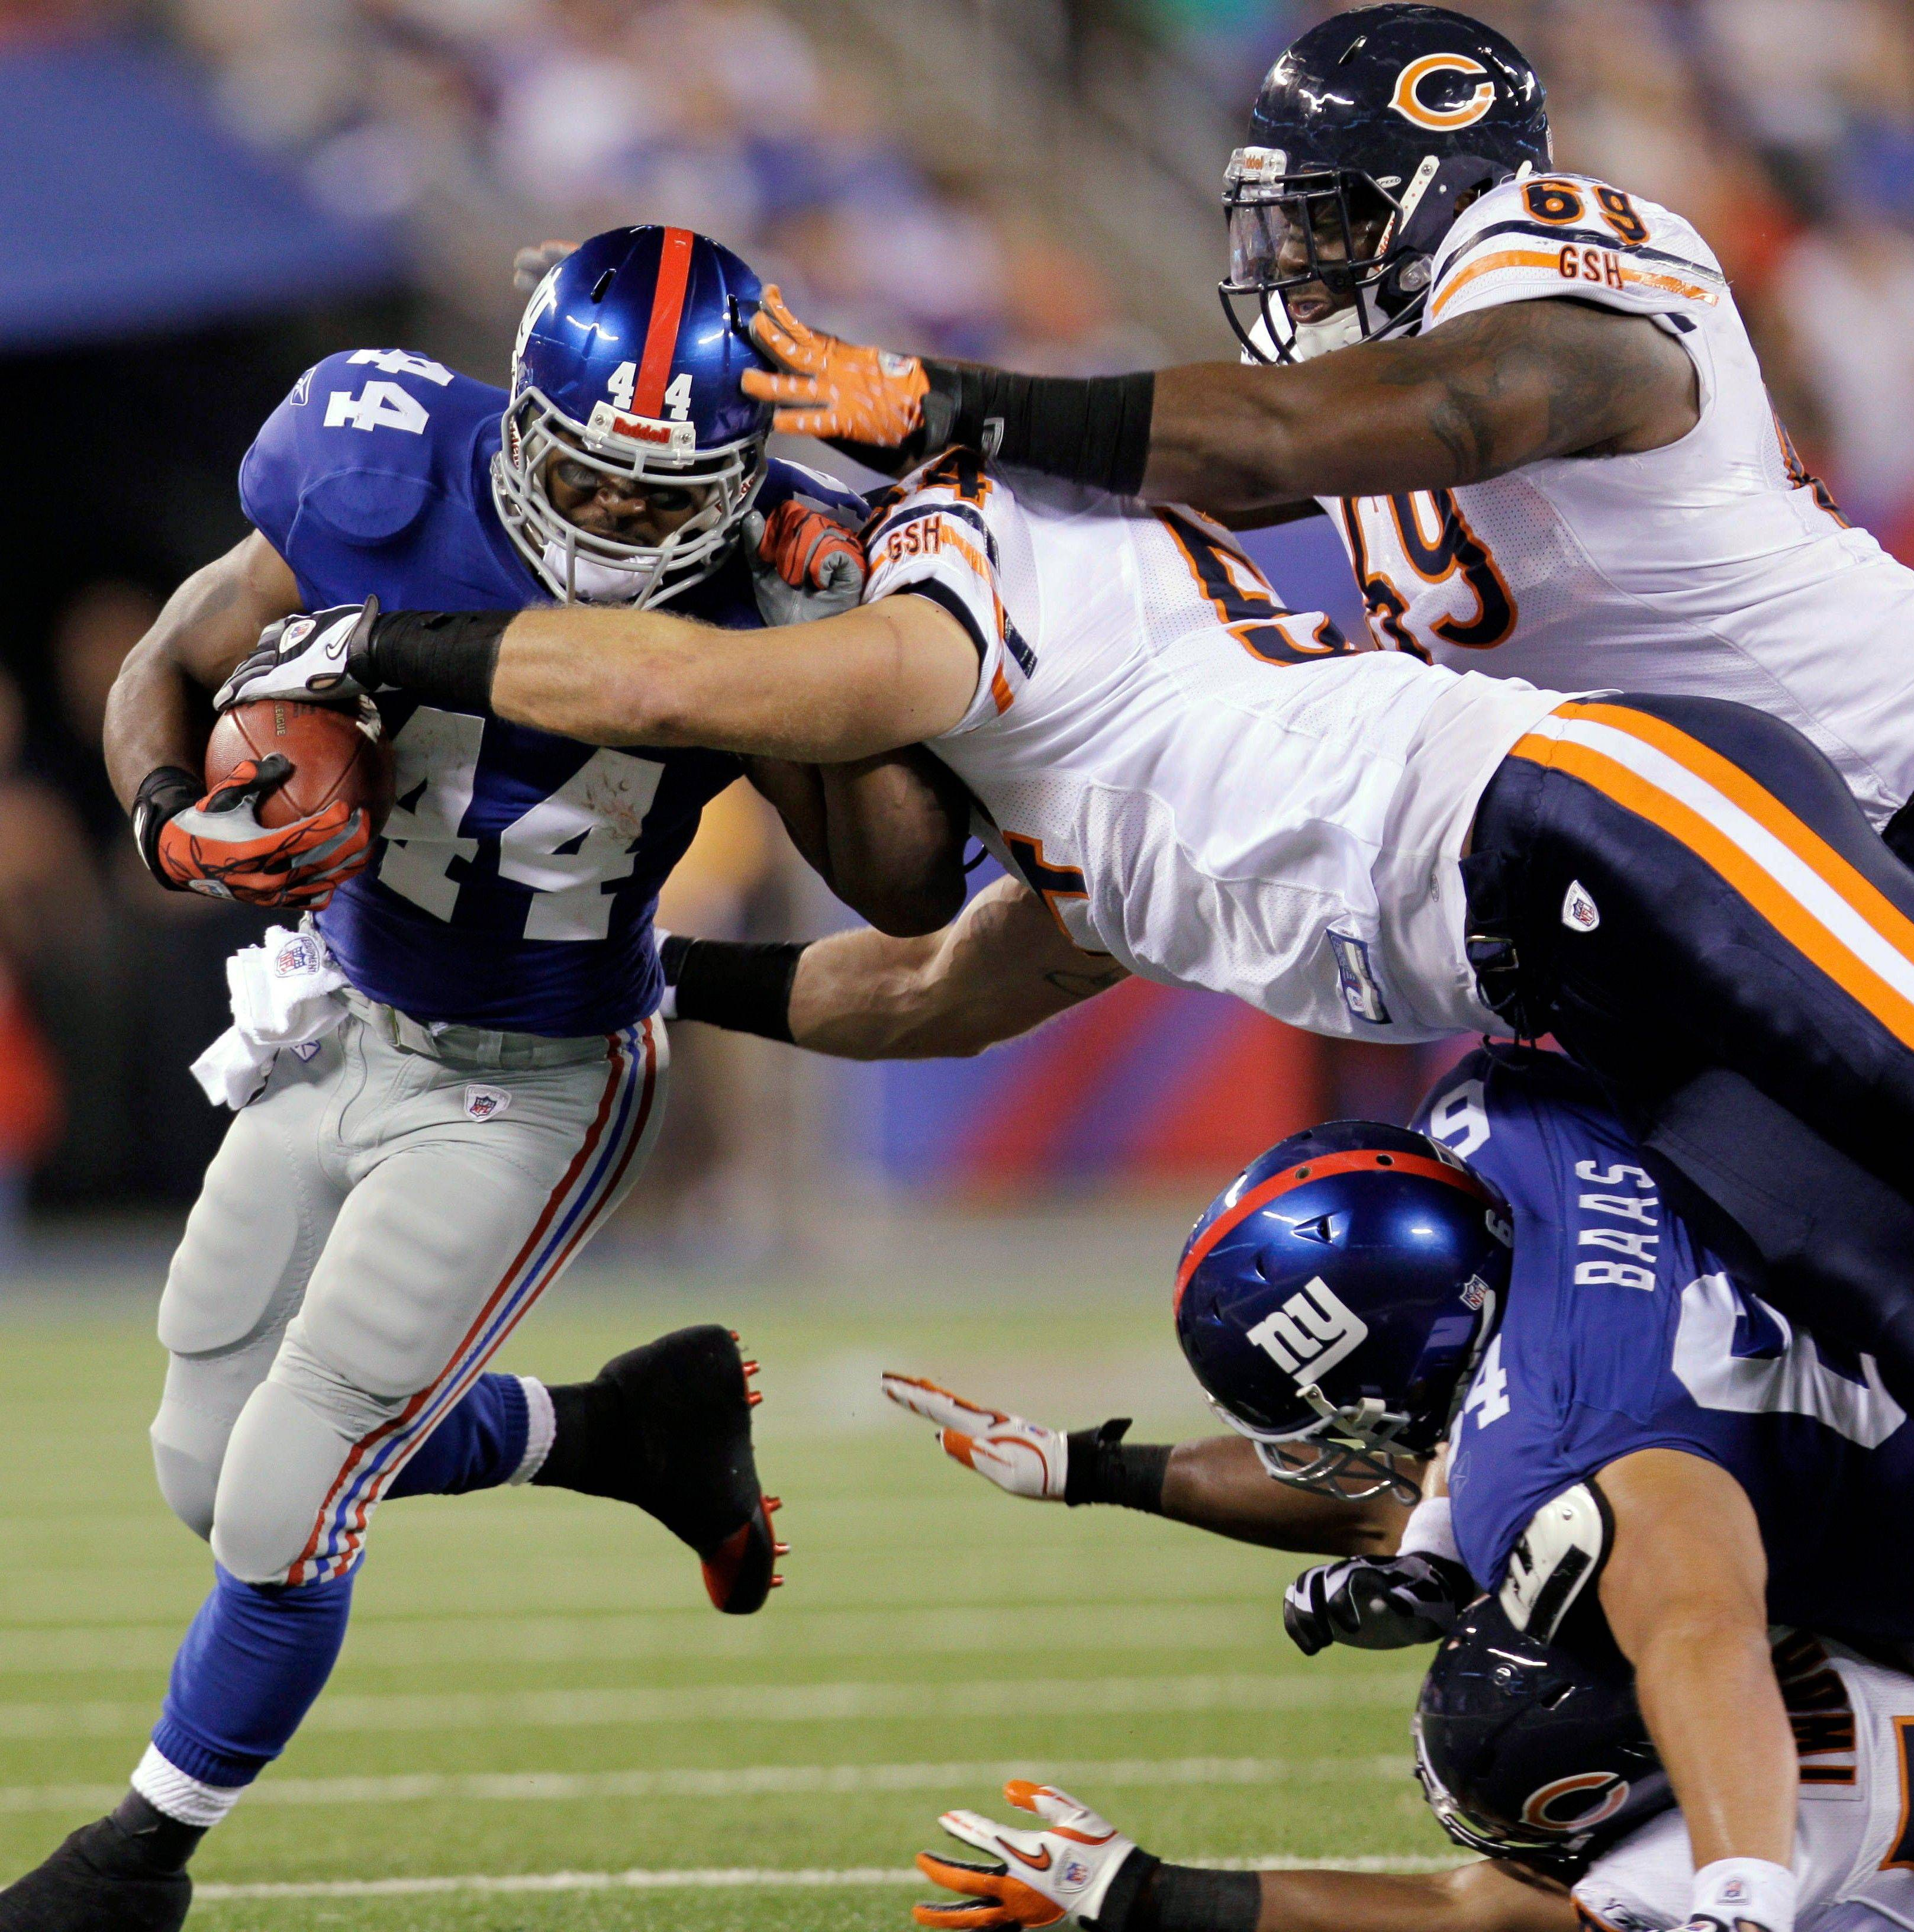 New York Giants running back Ahmad Bradshaw gets past the Bears' Brian Urlacher (54) and Ricky Henry (69) during Monday's first quarter at the Meadowlands.